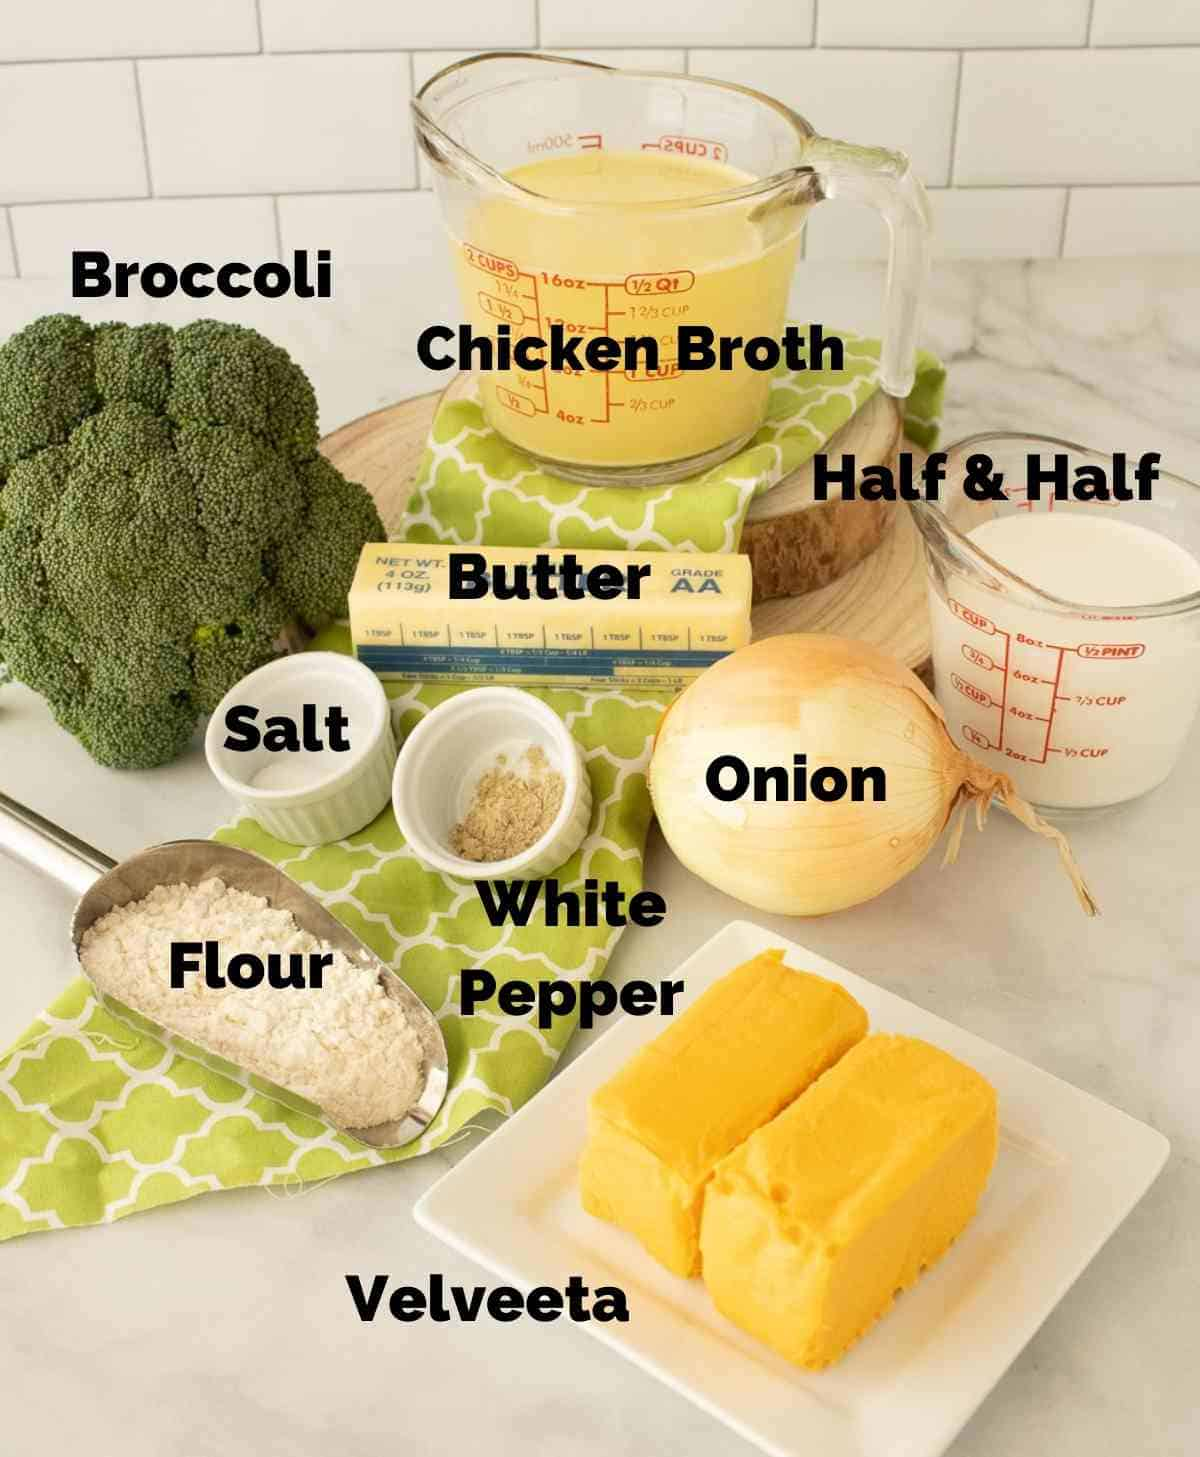 Ingredients for broccoli cheese soup.